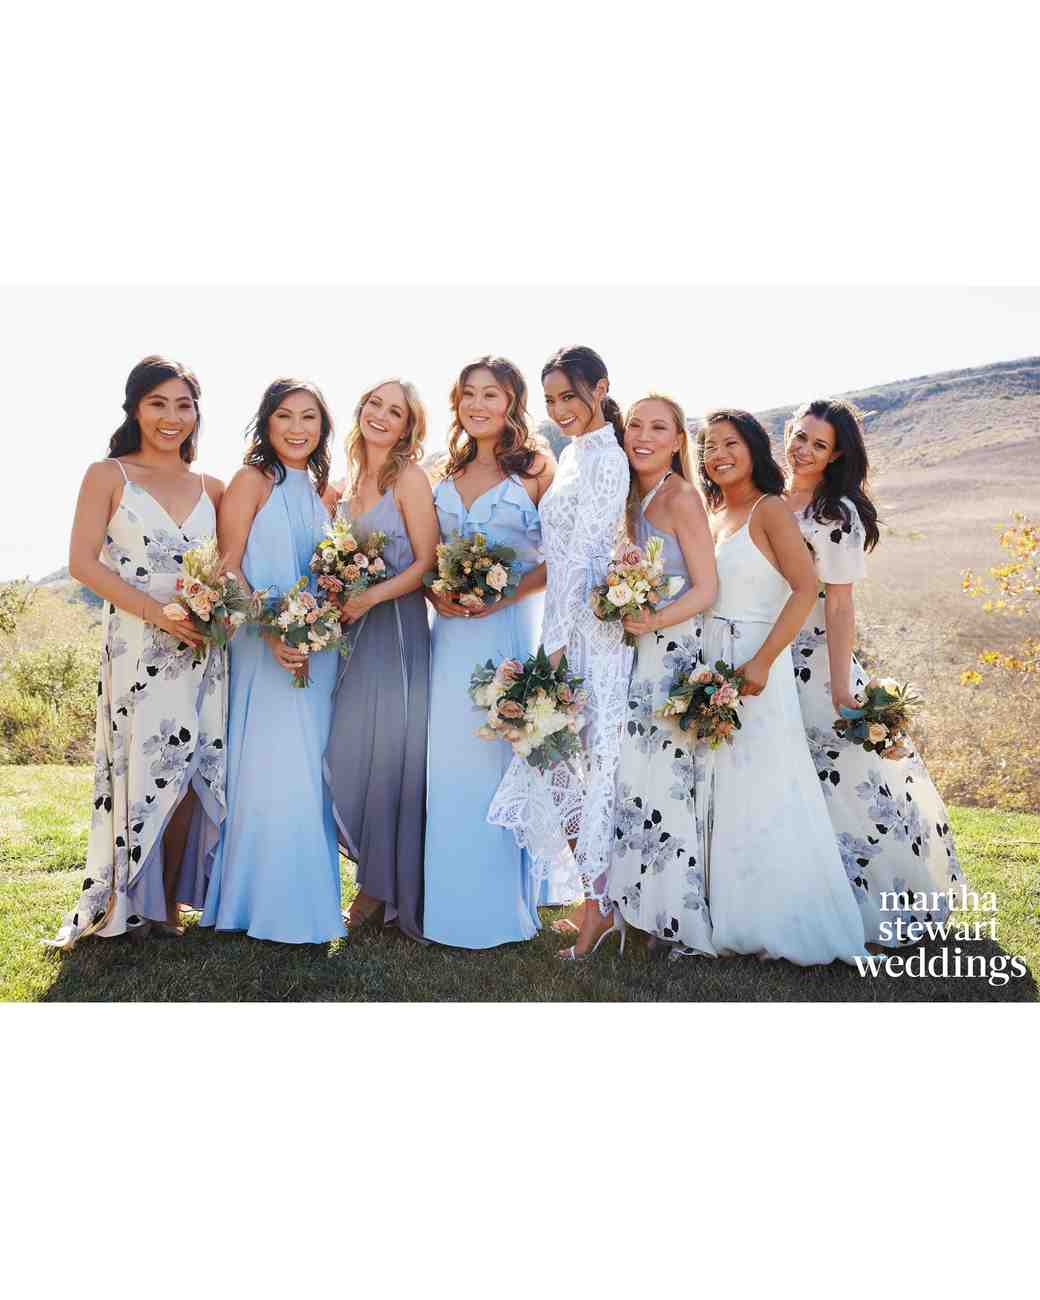 jamie-bryan-wedding-21-wedding-party-bridesmaids-2036-d112664.jpg